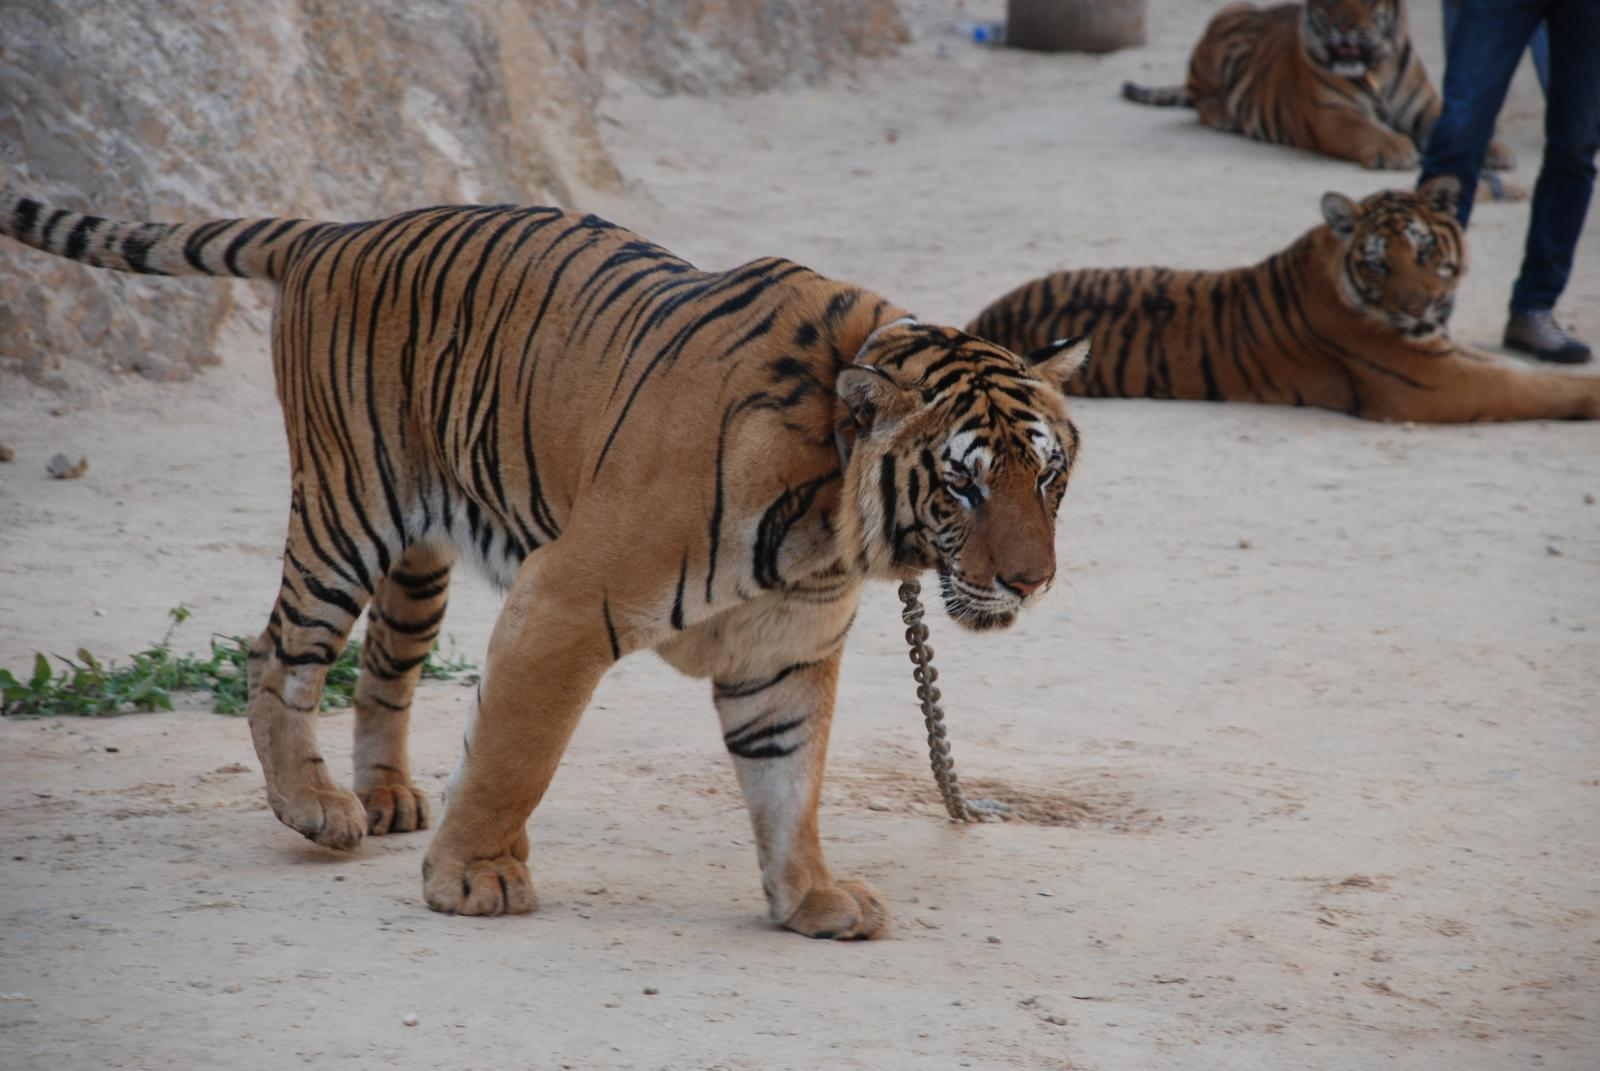 Karma or Common Sense: What Can We Learn From the Abbot's Mauling at Tiger Temple